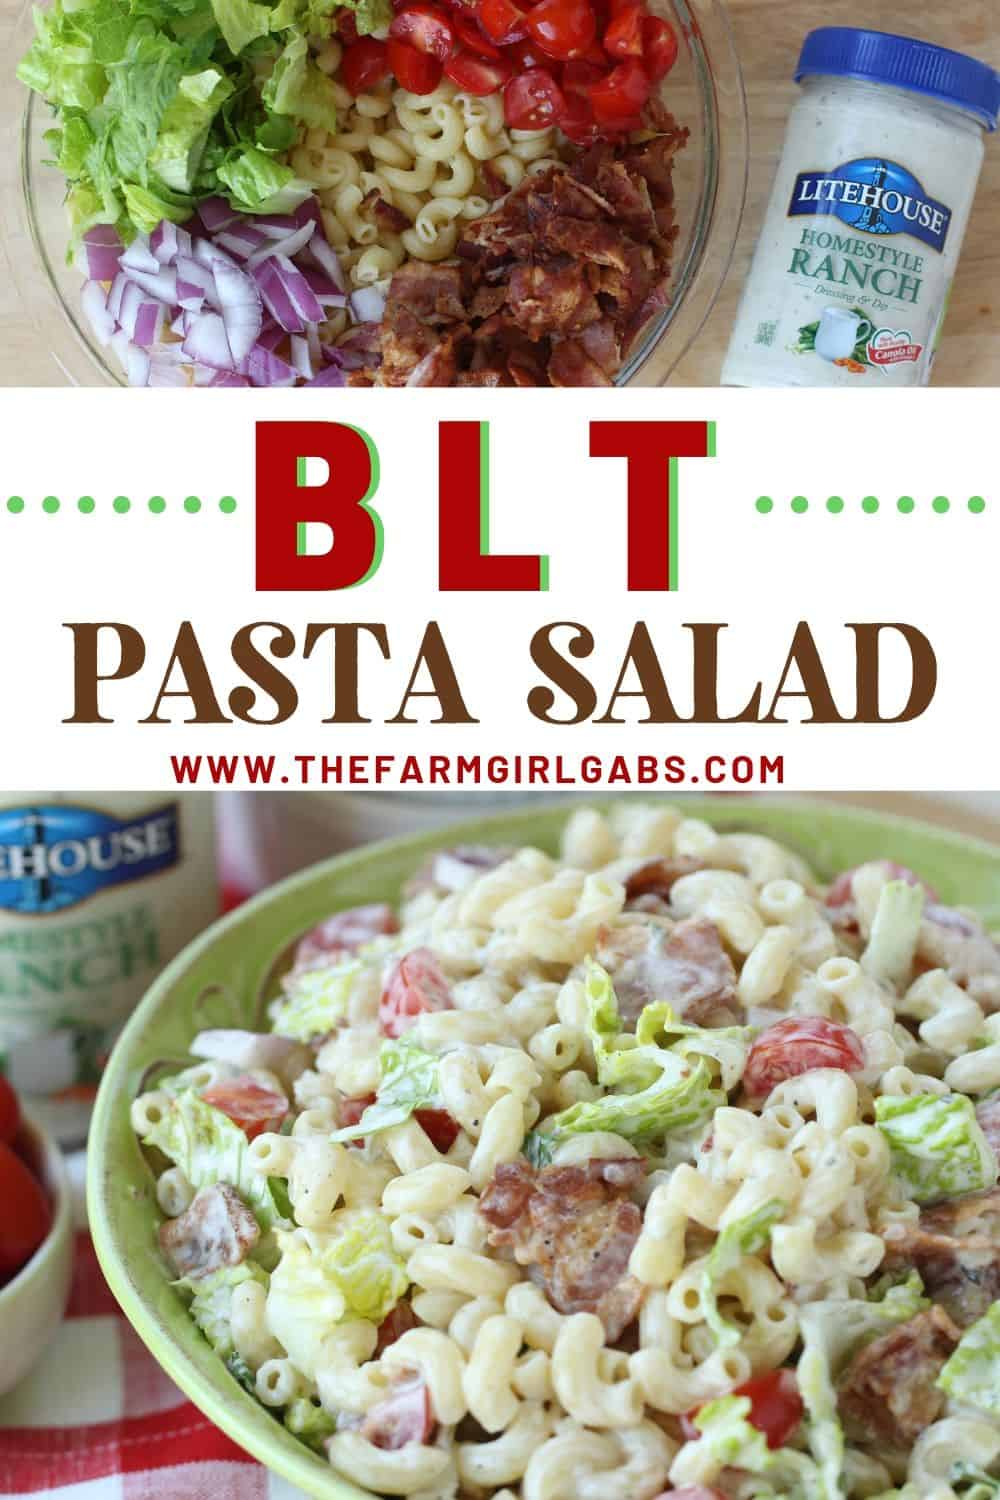 Everything is better with bacon! It's picnic season and this BLT Pasta Salad is the perfect summer salad recipe! This pasta salad recipe is filled with crispy bacon, fresh tomatoes and romaine. It is dressed with Litehouse Ranch Dressing. Save this kicked up macaroni salad recipe for your next backyard BBQ or picnic. #bltpastasalad #BLT #pastasalad #bacon #summersalad #macaroni salad